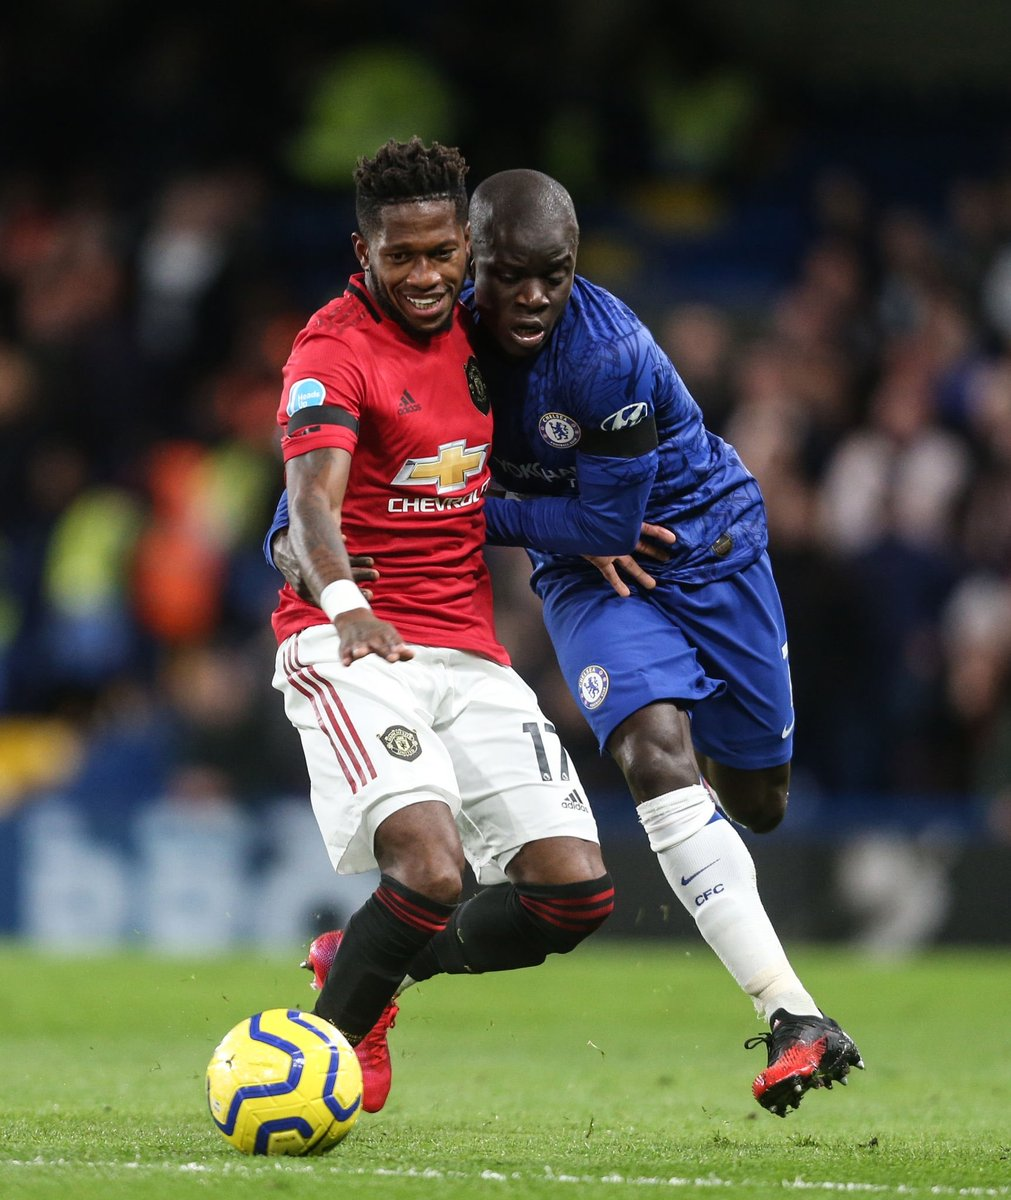 What's the hush about #CHEMUN Africans are animals how can you Bet365 days a year when we have created 500000 new jobs like fighting locusts and evading floods #SportPesa  #freetoplaypic.twitter.com/7oV0MikWjZ